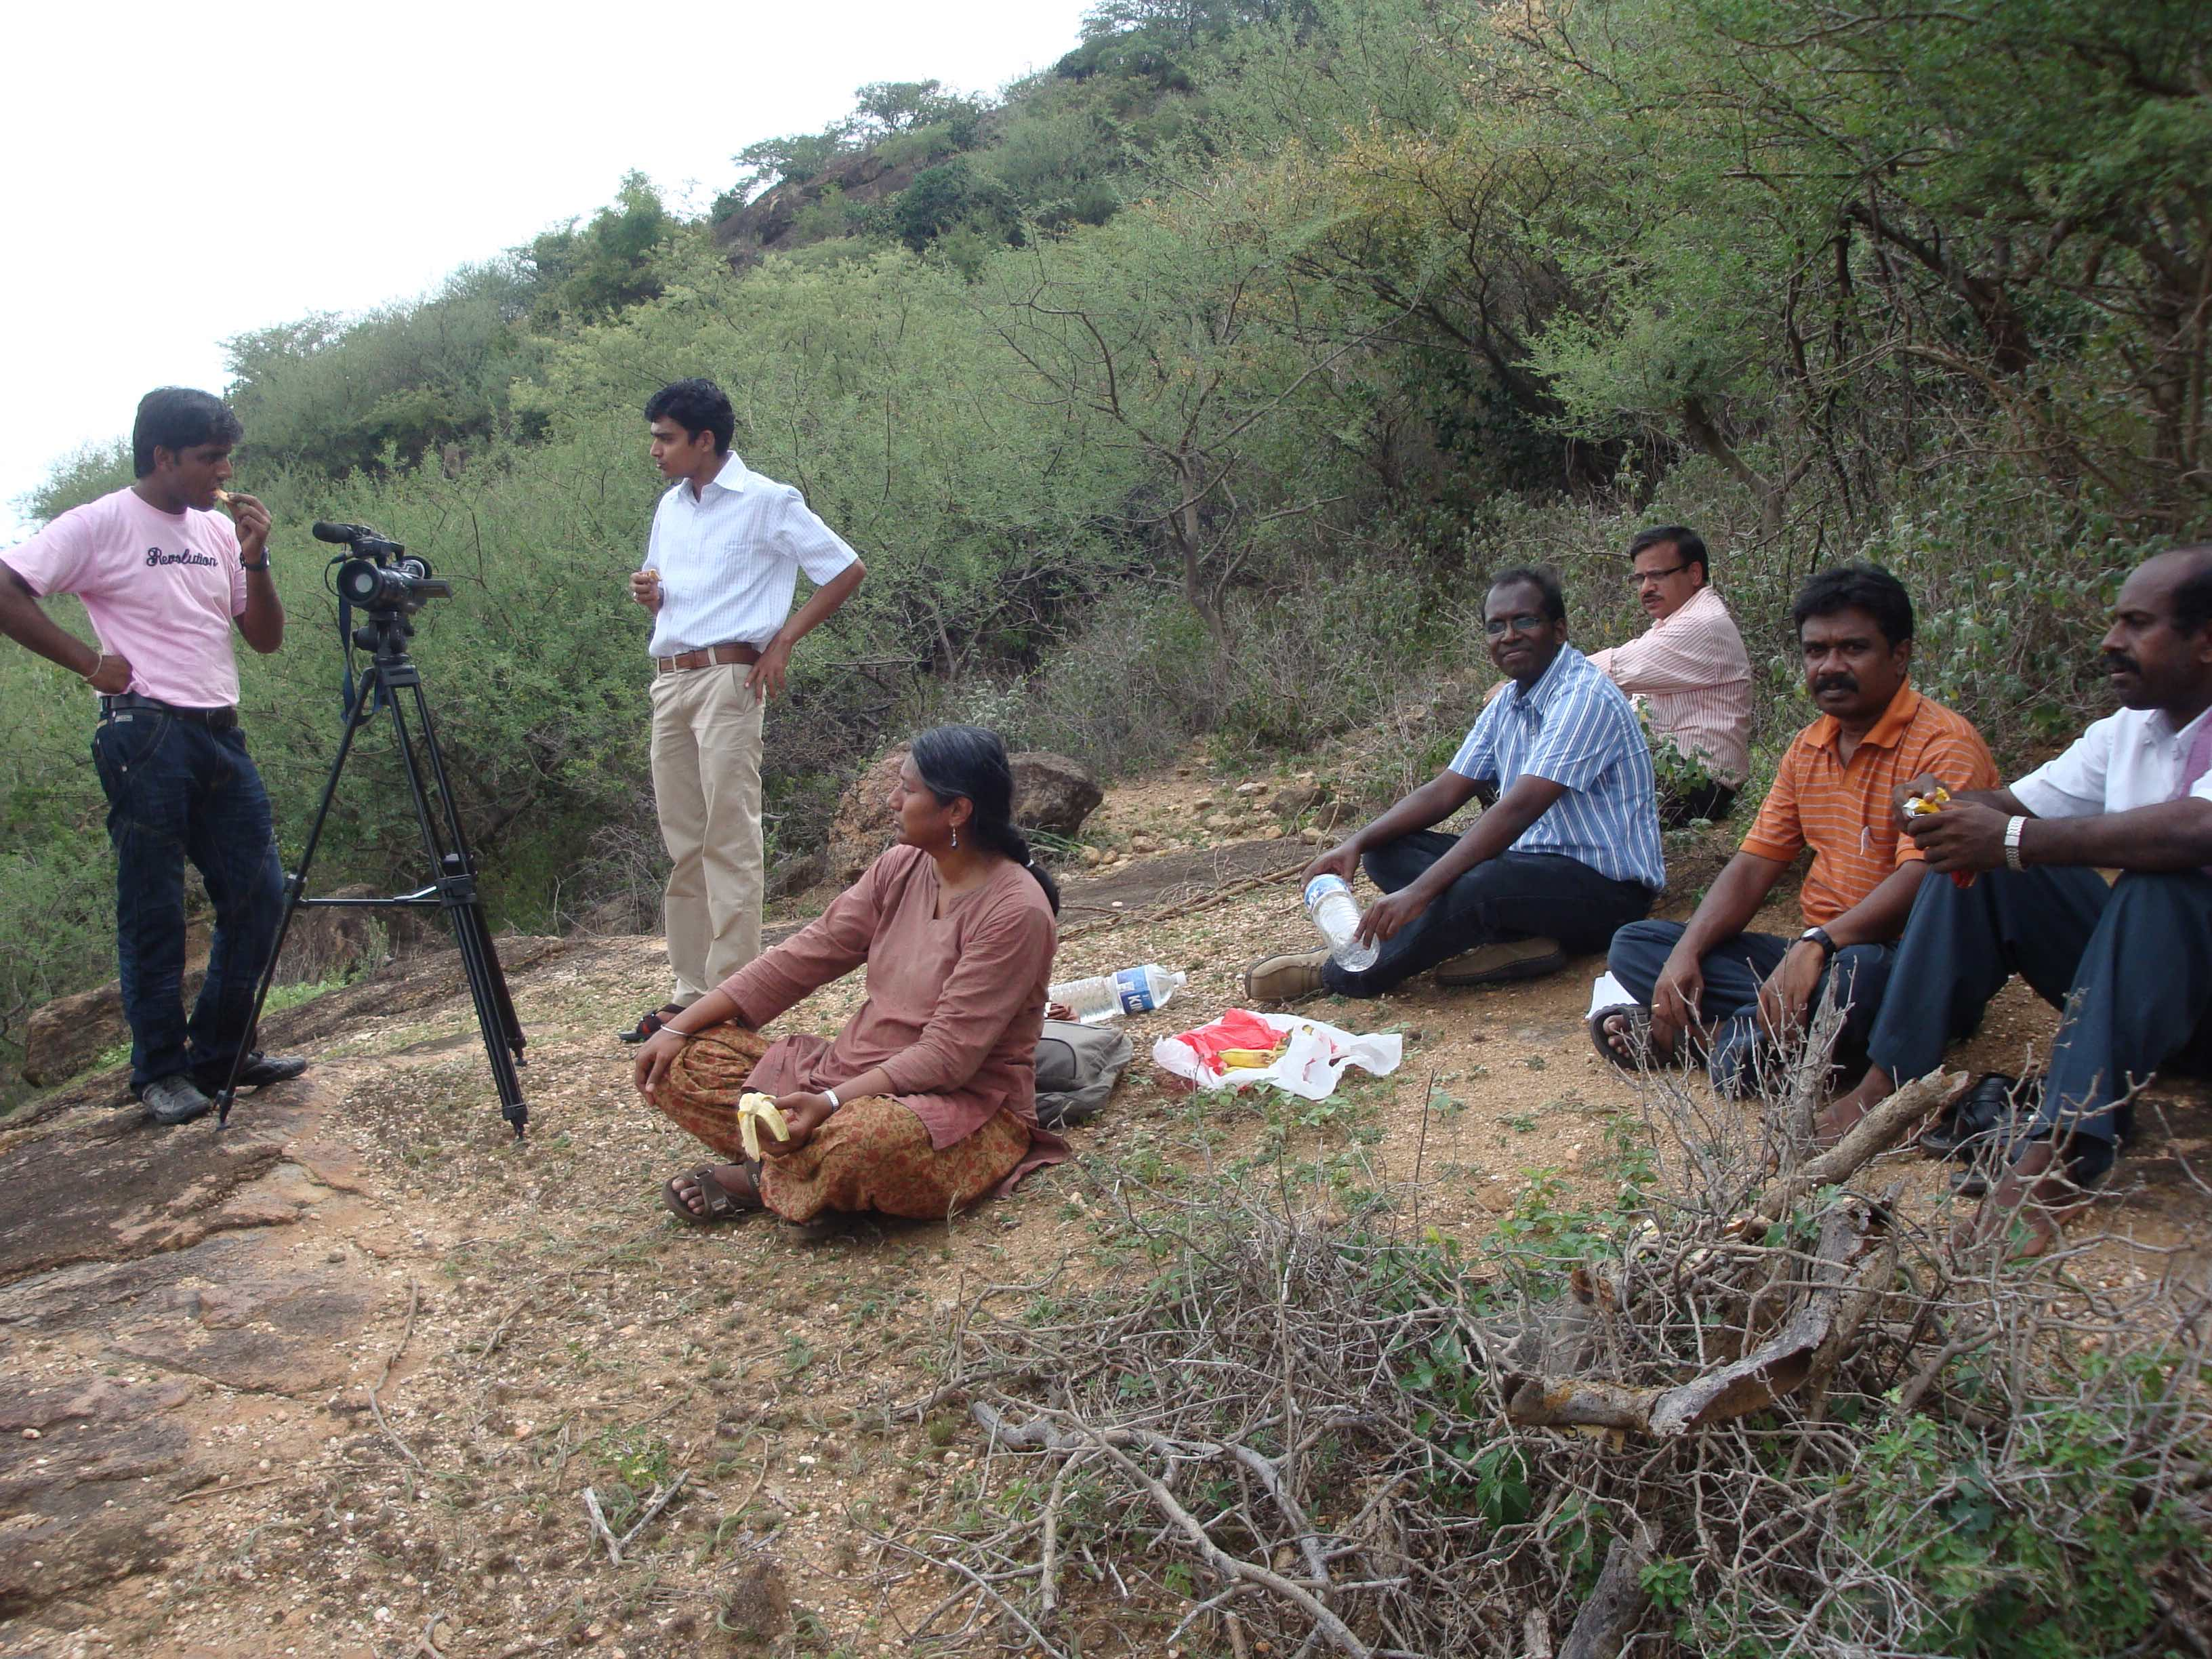 Members of the INO collaboration during a site inspection in Theni, Tamil Nadu. Credit: INO/TIFR